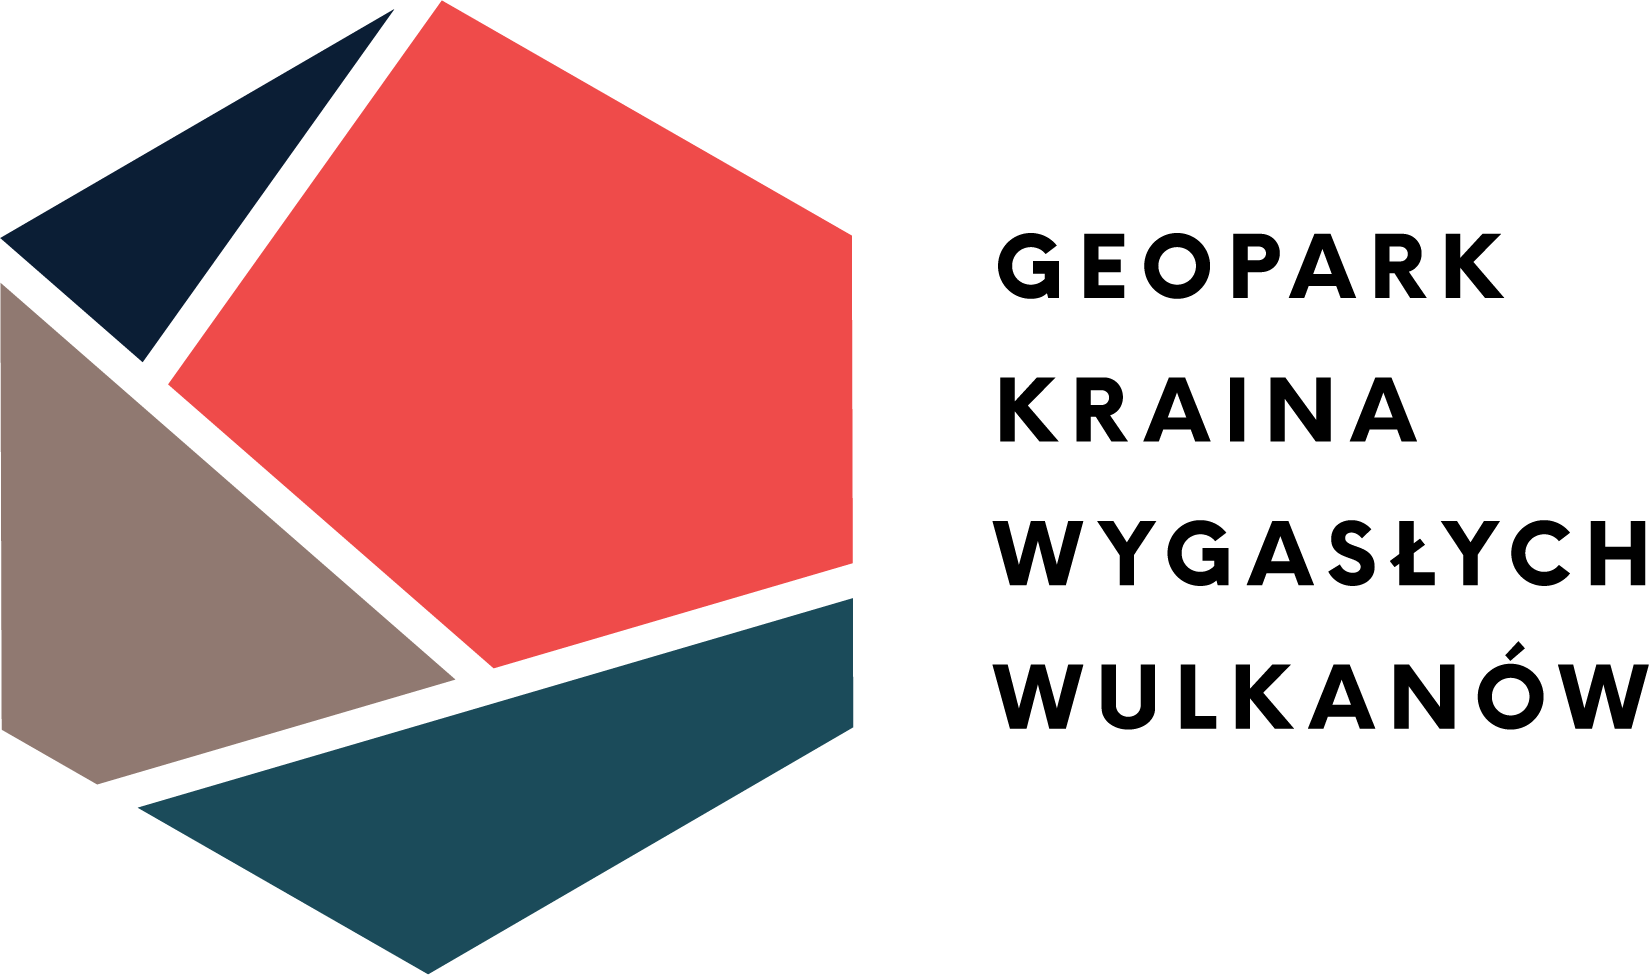 Geopark in Poland